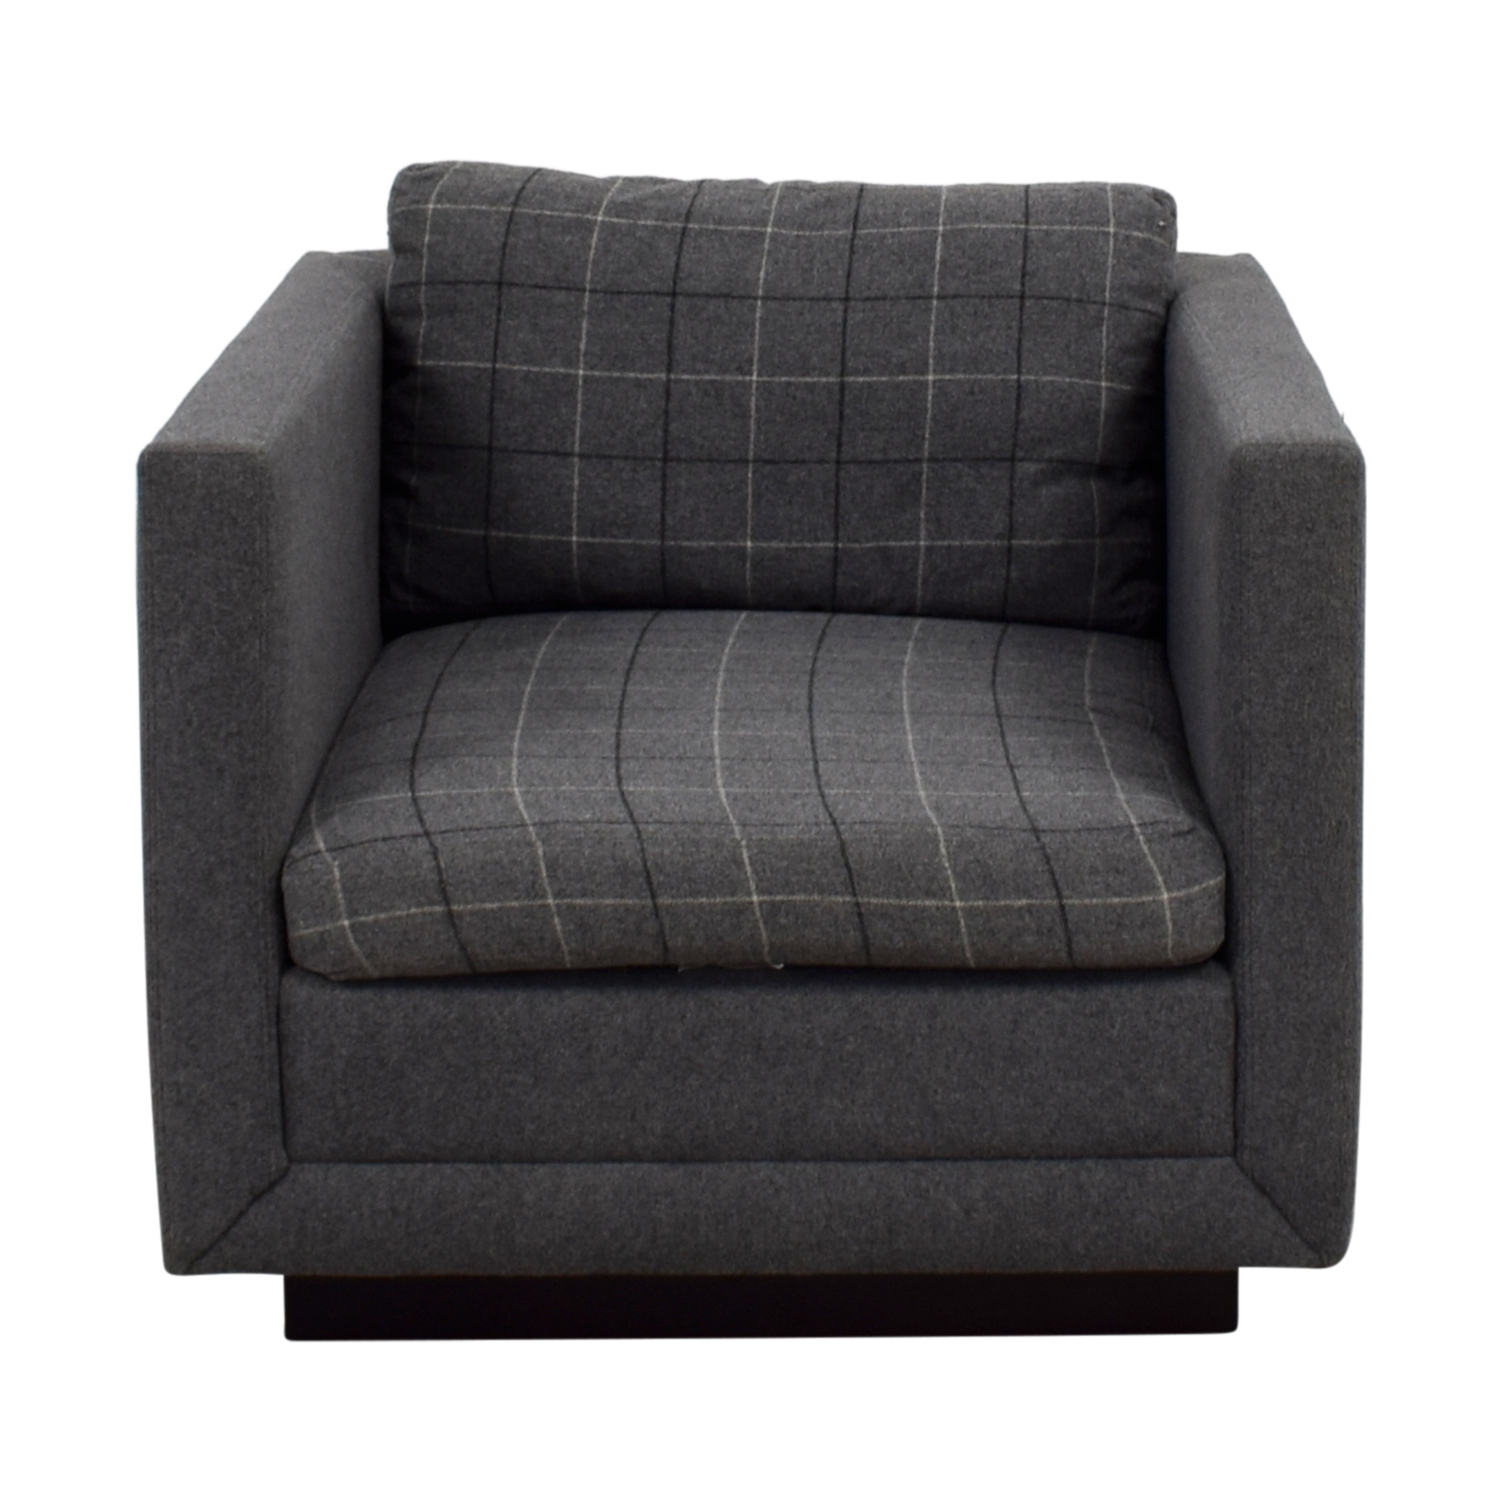 Jonathan Adler Jonathan Adler Blakeley Grey Plaid Accent Chair second hand